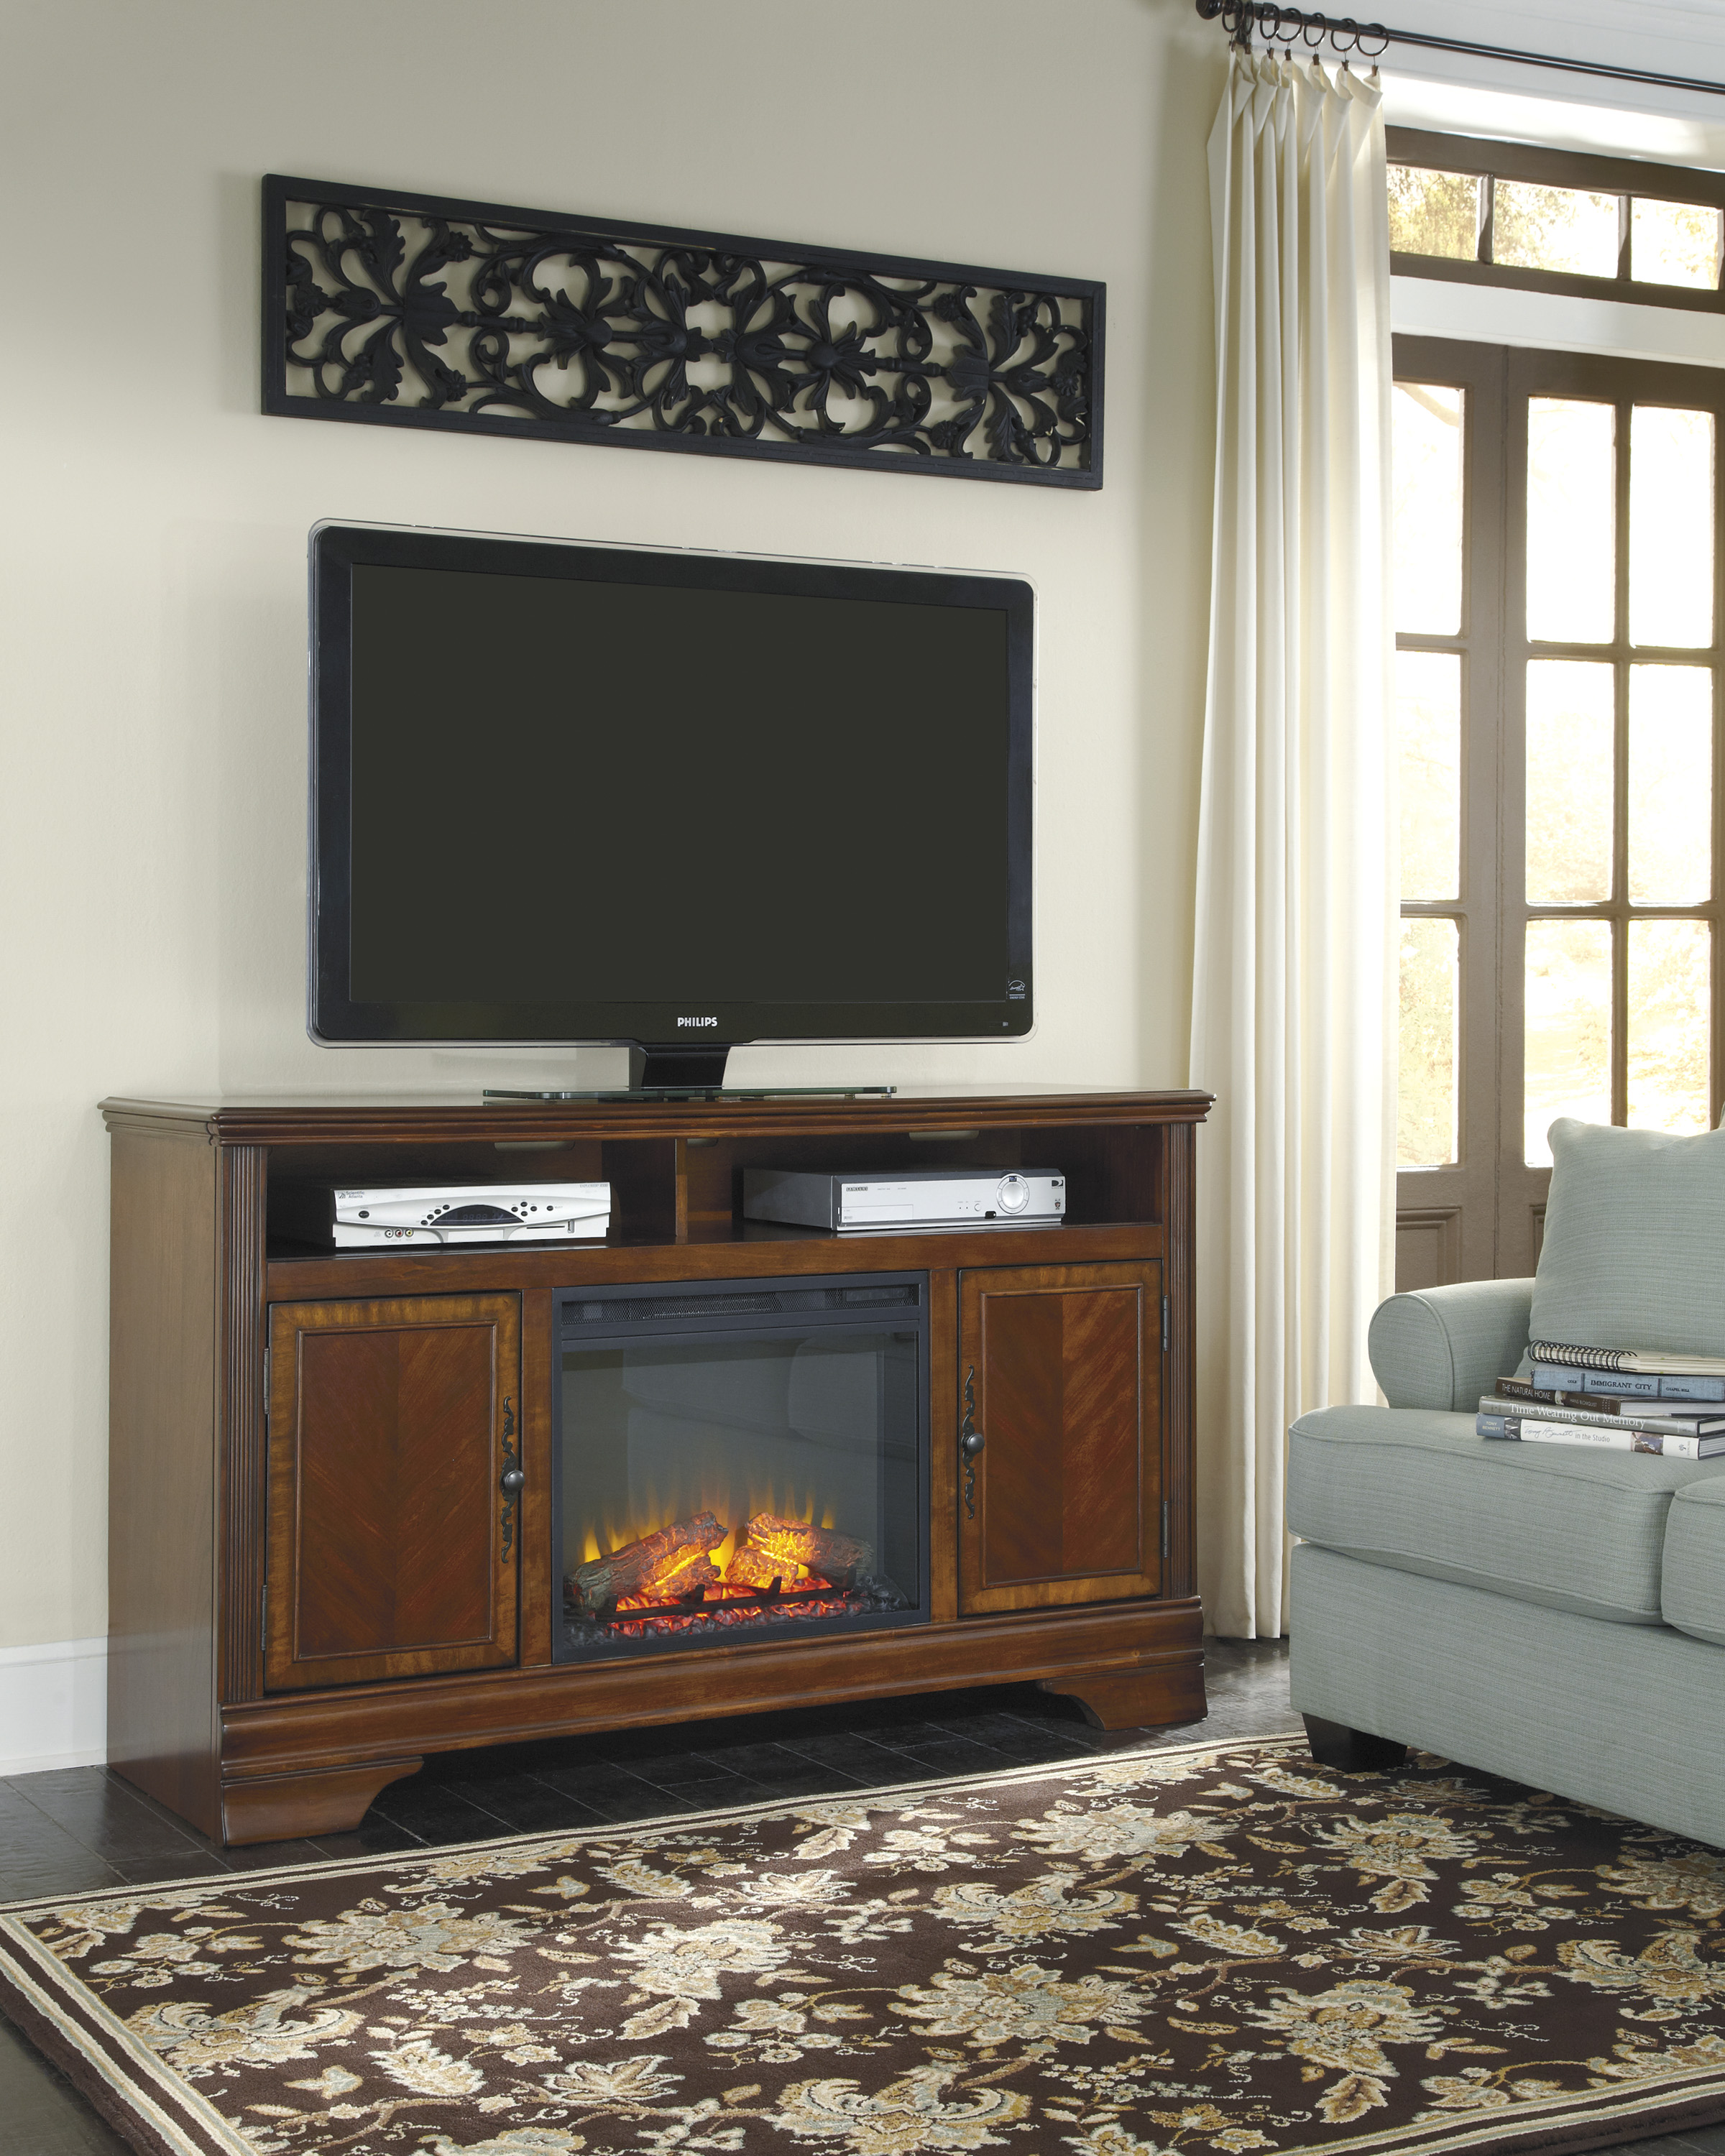 furniture with to entracing design on around perfect mantel shelf white and grey leather livin brown living your by stone room fireplace wooden chairs the connected shelves rug of